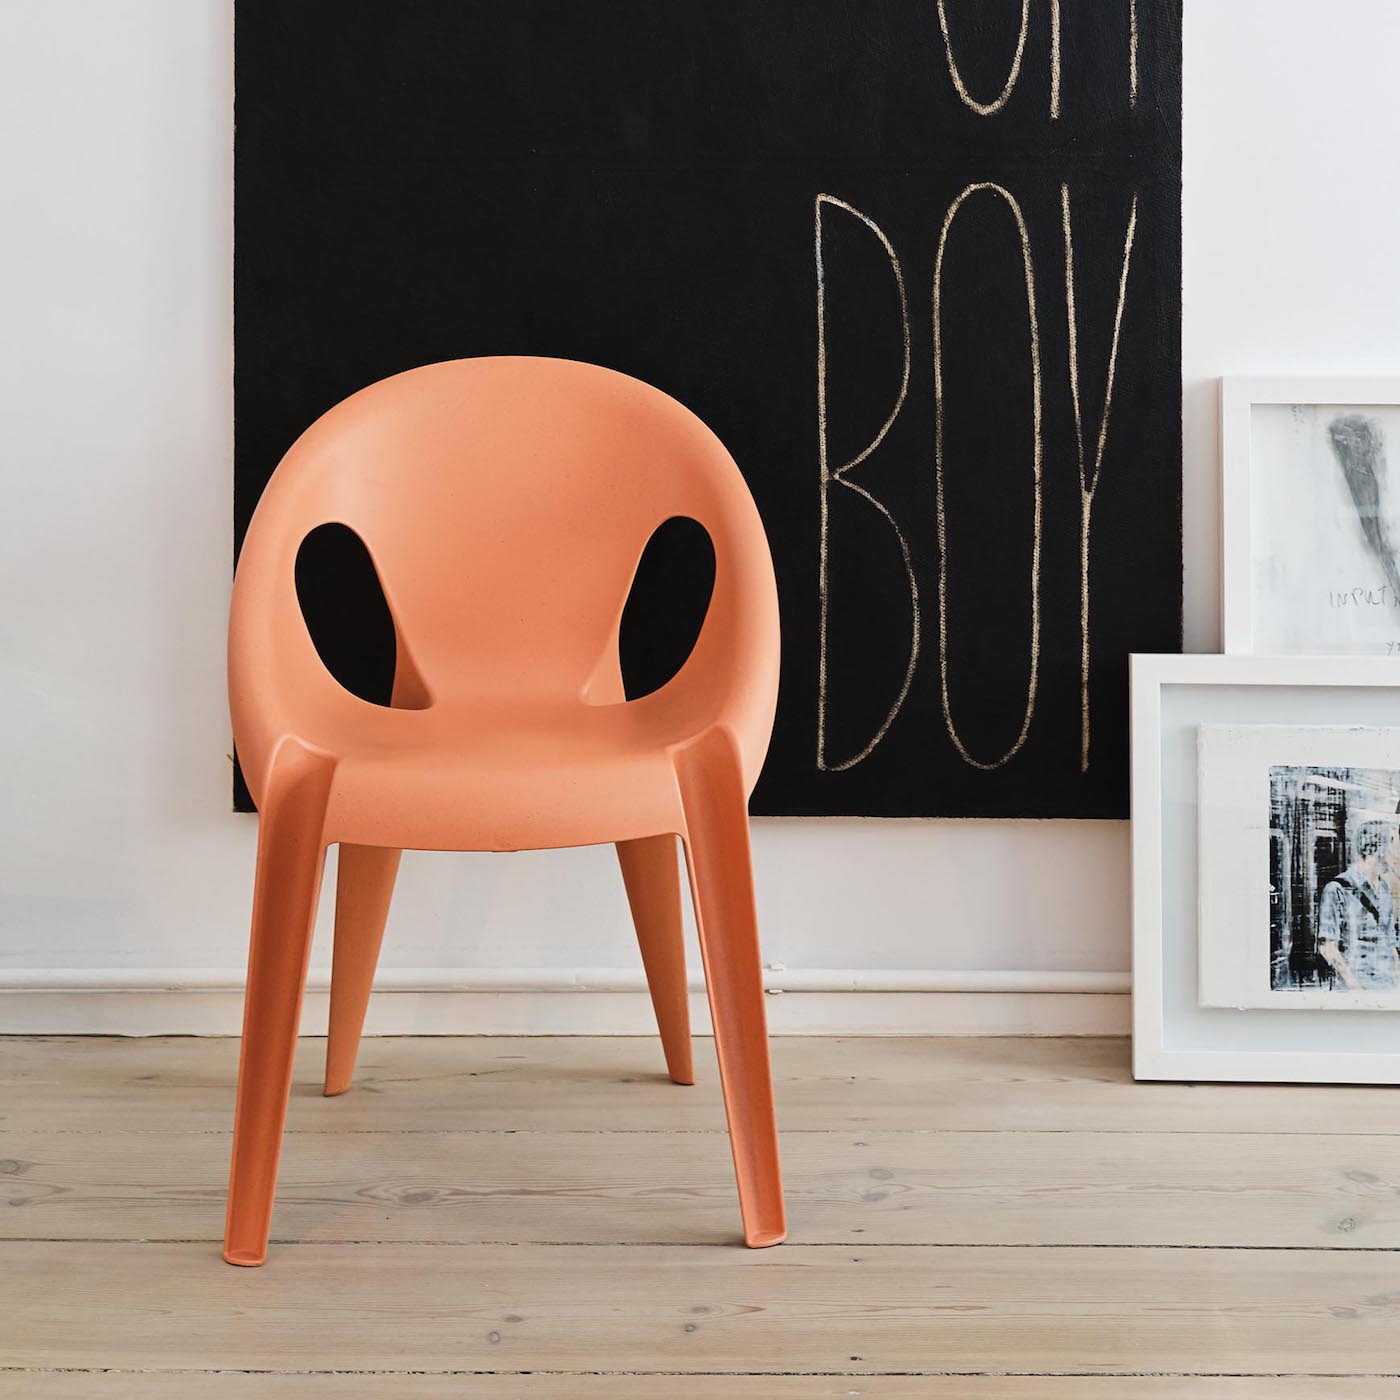 Eco Edition_Konstantin Grcic Design_Bell Chair_Sustainable architecture interiors products 6-min